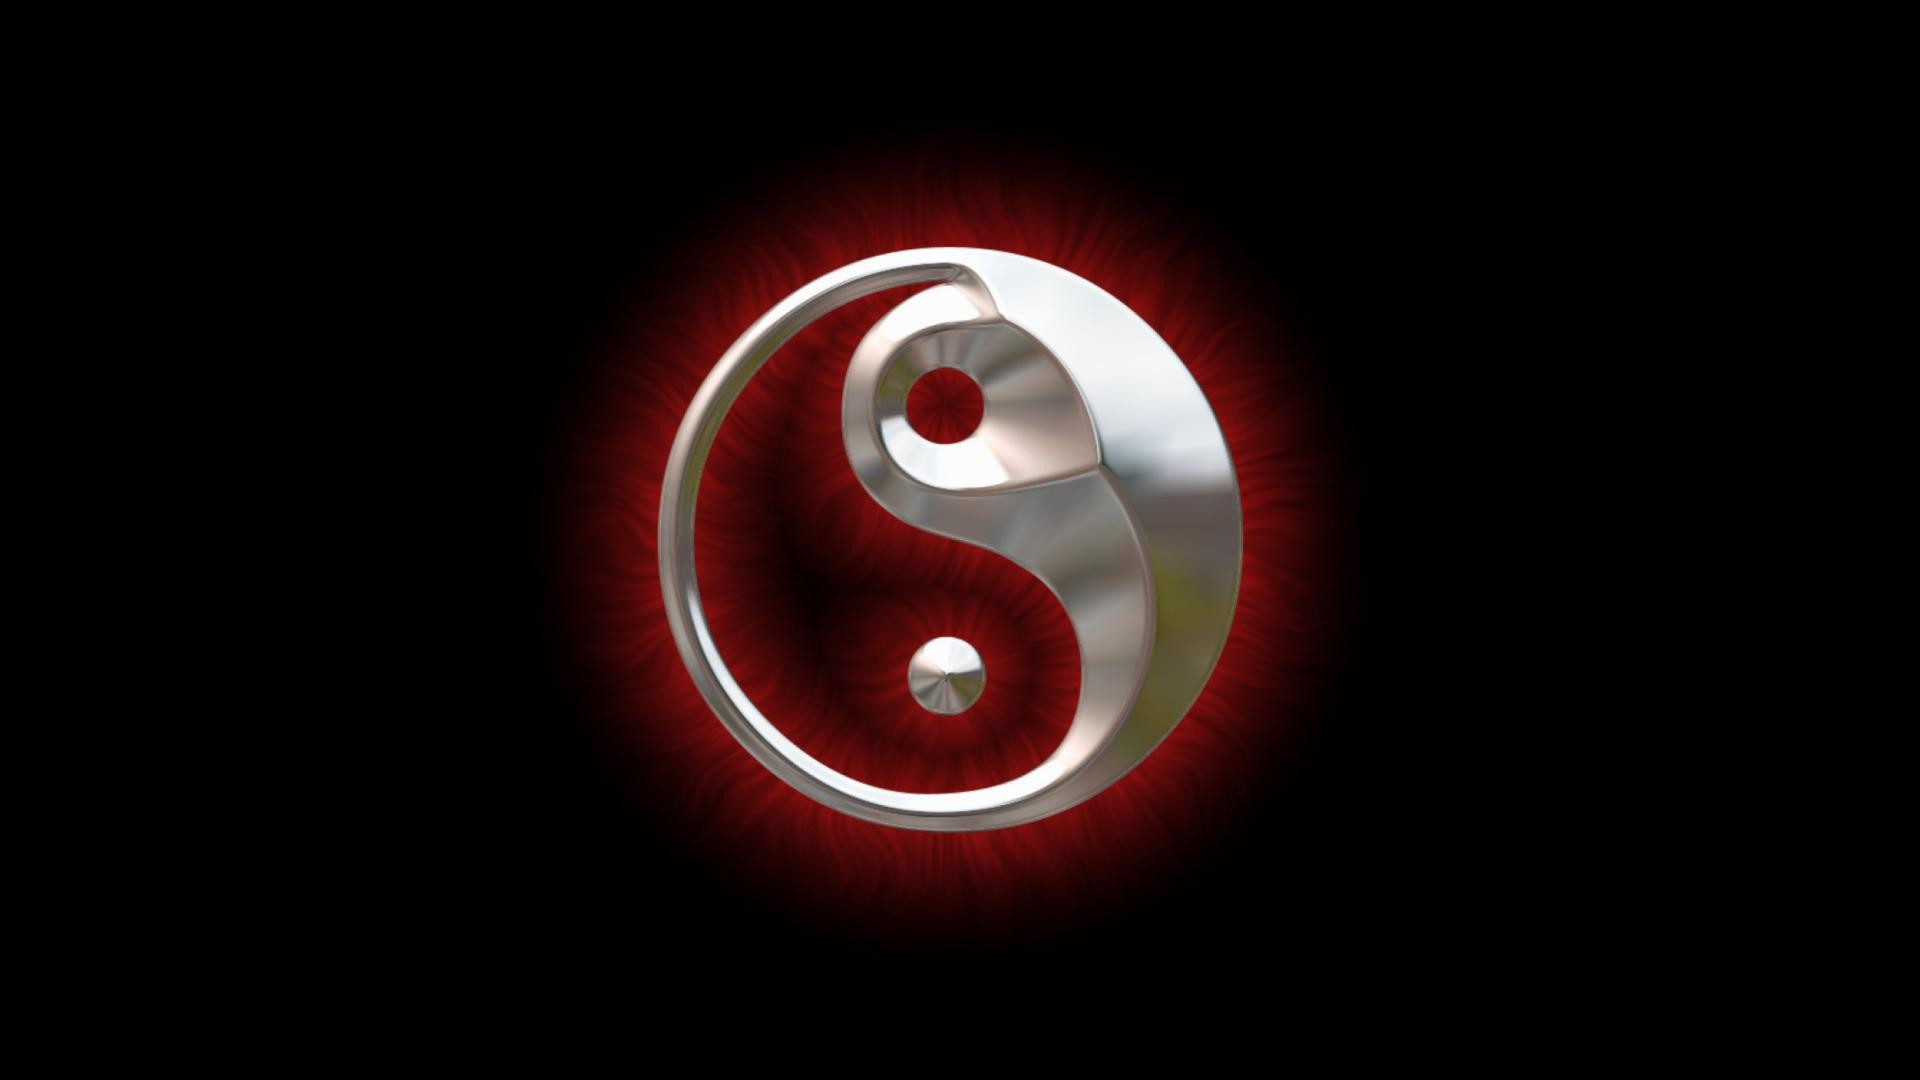 wallpaper.wiki-Cool-Yin-Yang-Background-for-PC-